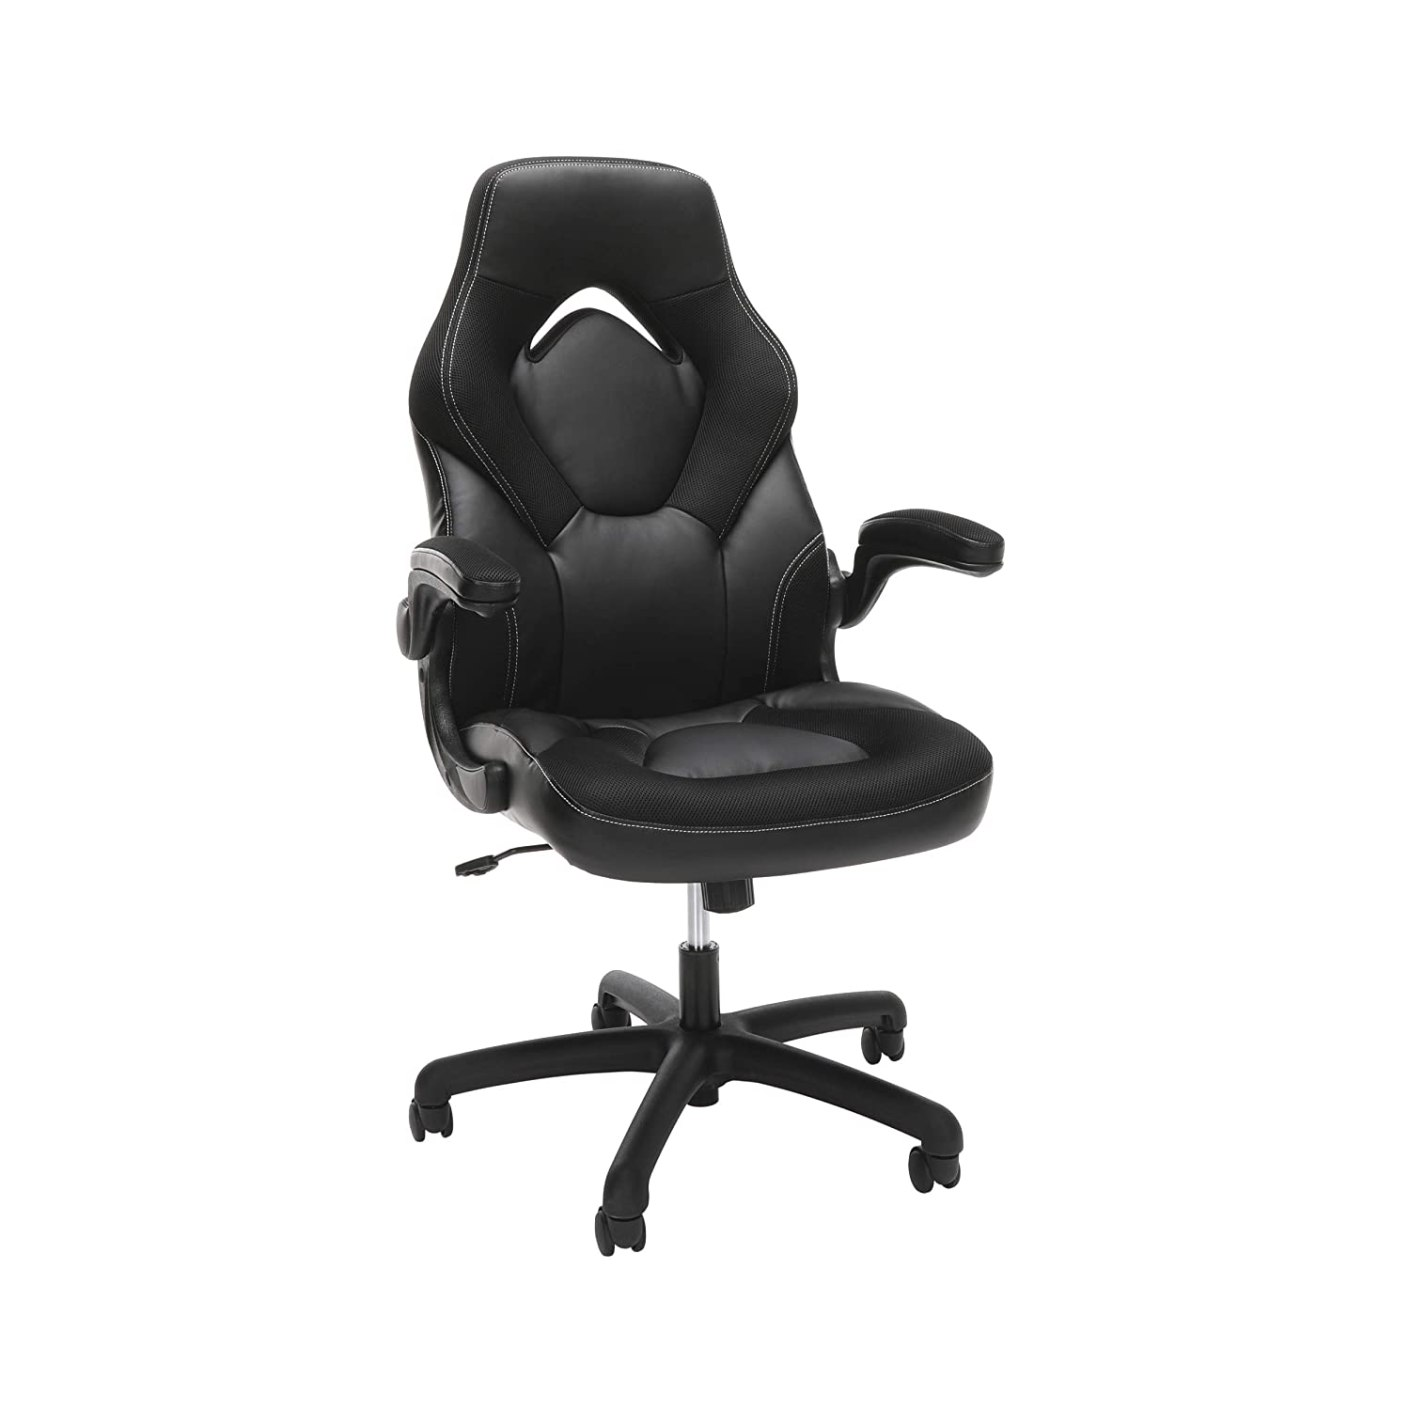 Asiento gamer color negrohttps://amzn.to/2Ecq6LW